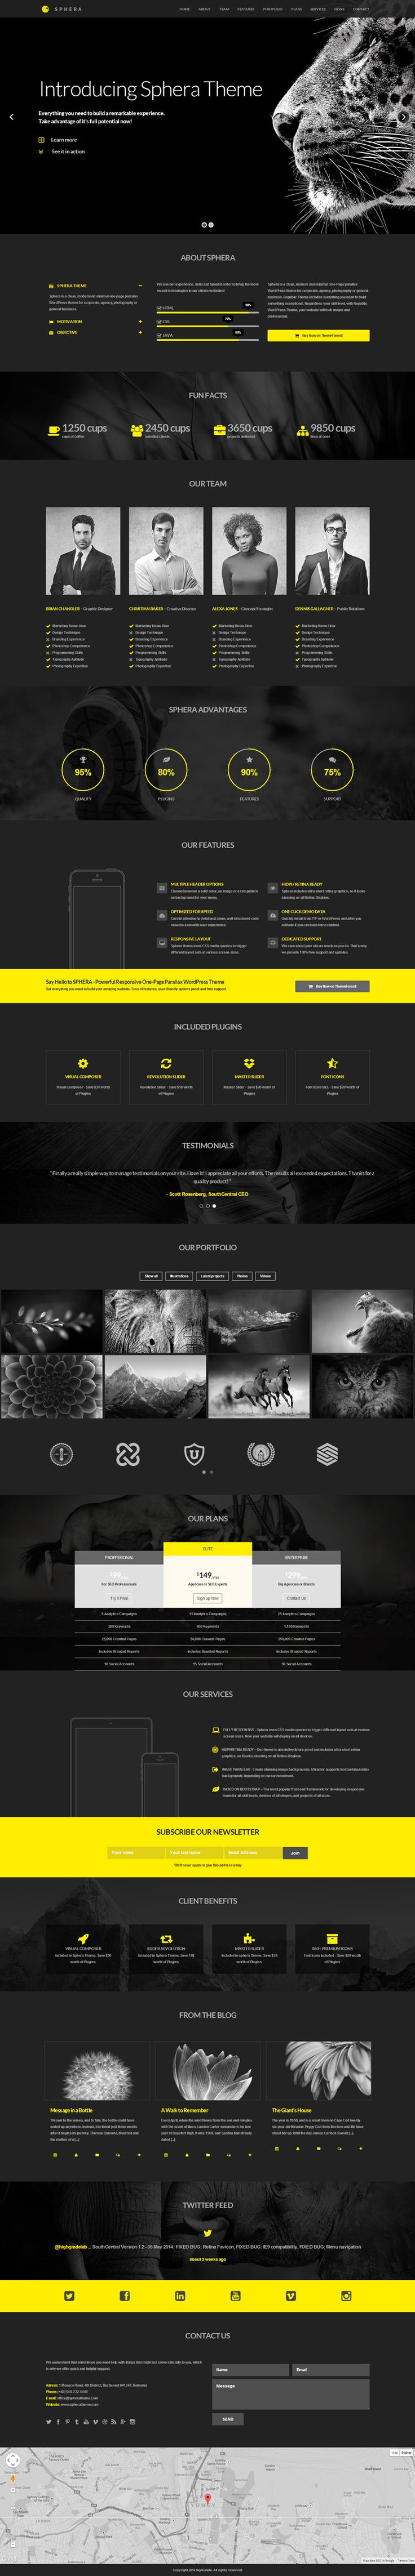 Dark WordPress Theme - Sphera http://www.wpmustache.com/wordpress/dark-wordpress-theme-sphera/